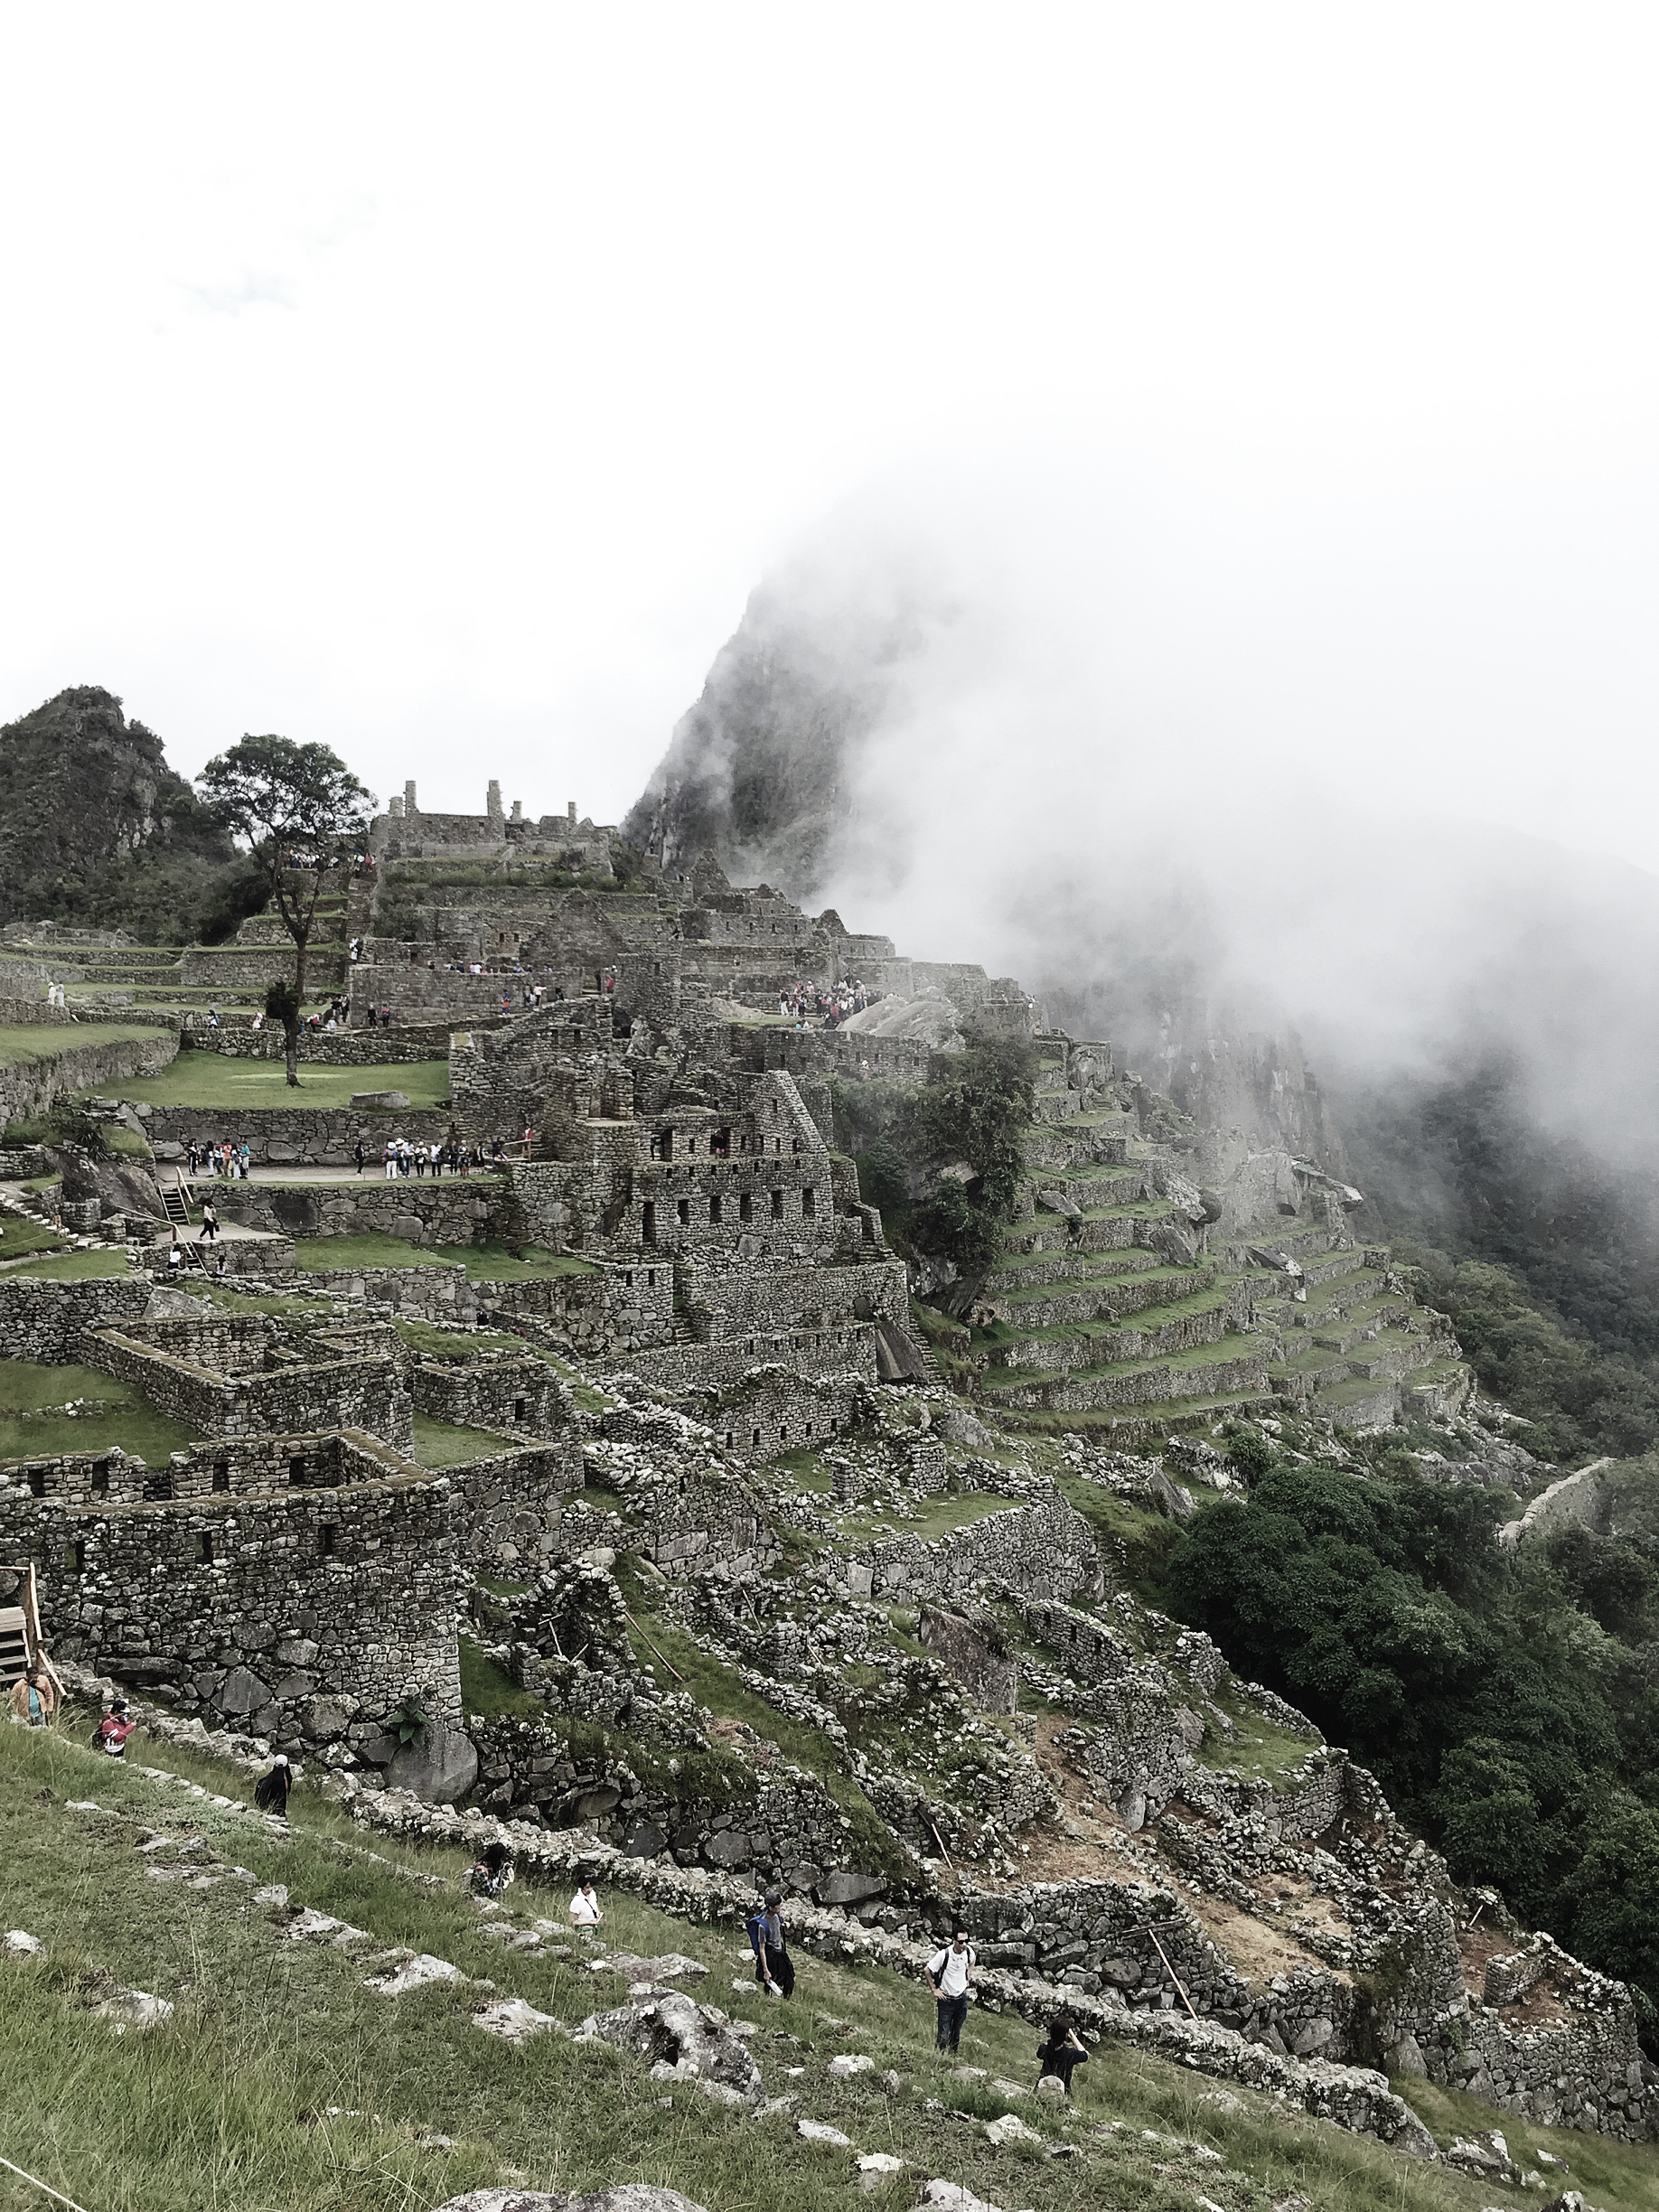 Our first sighting of Machu Picchu. We arrived at 9:00AM with fog and a little rain.